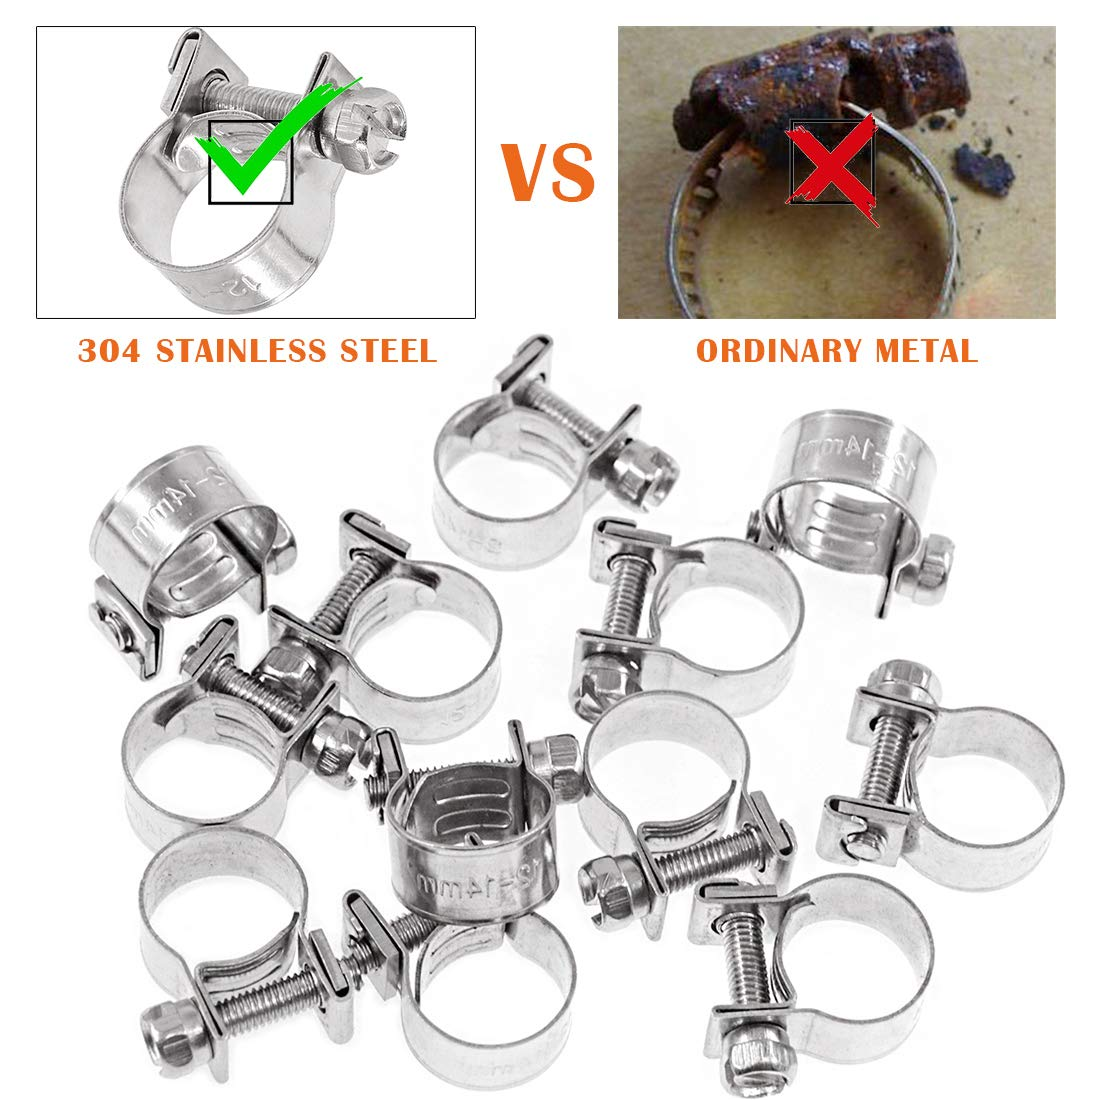 14-16mm Rustark 12 Pcs Mini Fuel Injection Hose Clamp Adjustable 14-16mm Range Stainless Steel Hose Clips for Plumbing Automotive and Mechanical